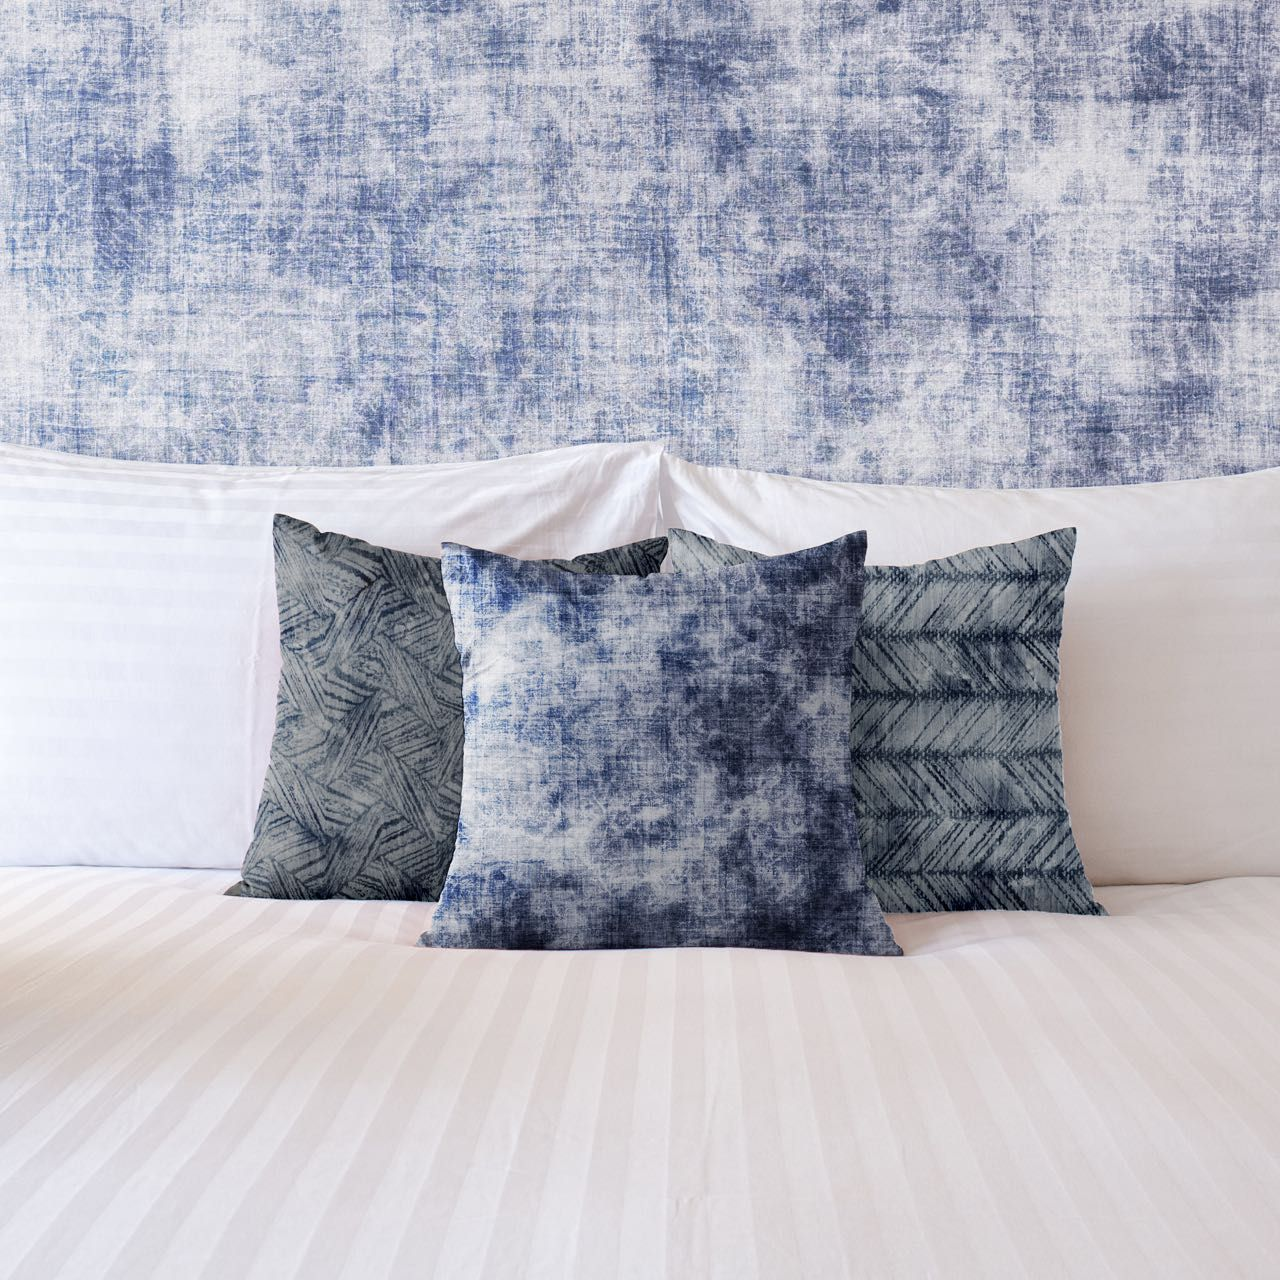 indigo embelishments concept cushion upholstery wallpaper